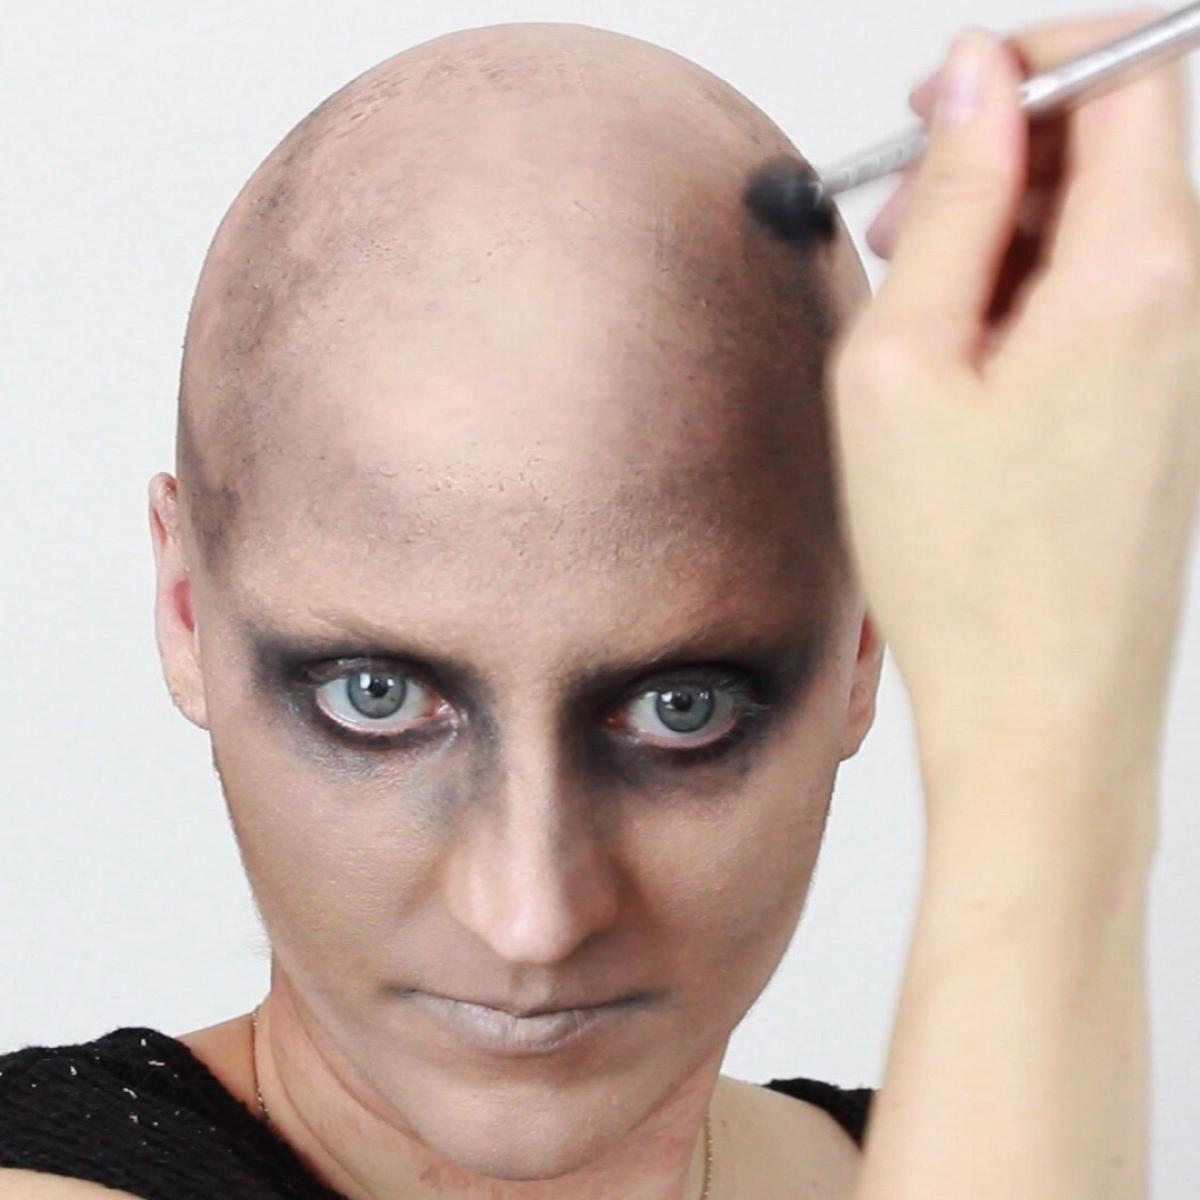 Mad Max Makeup: Bald Cap